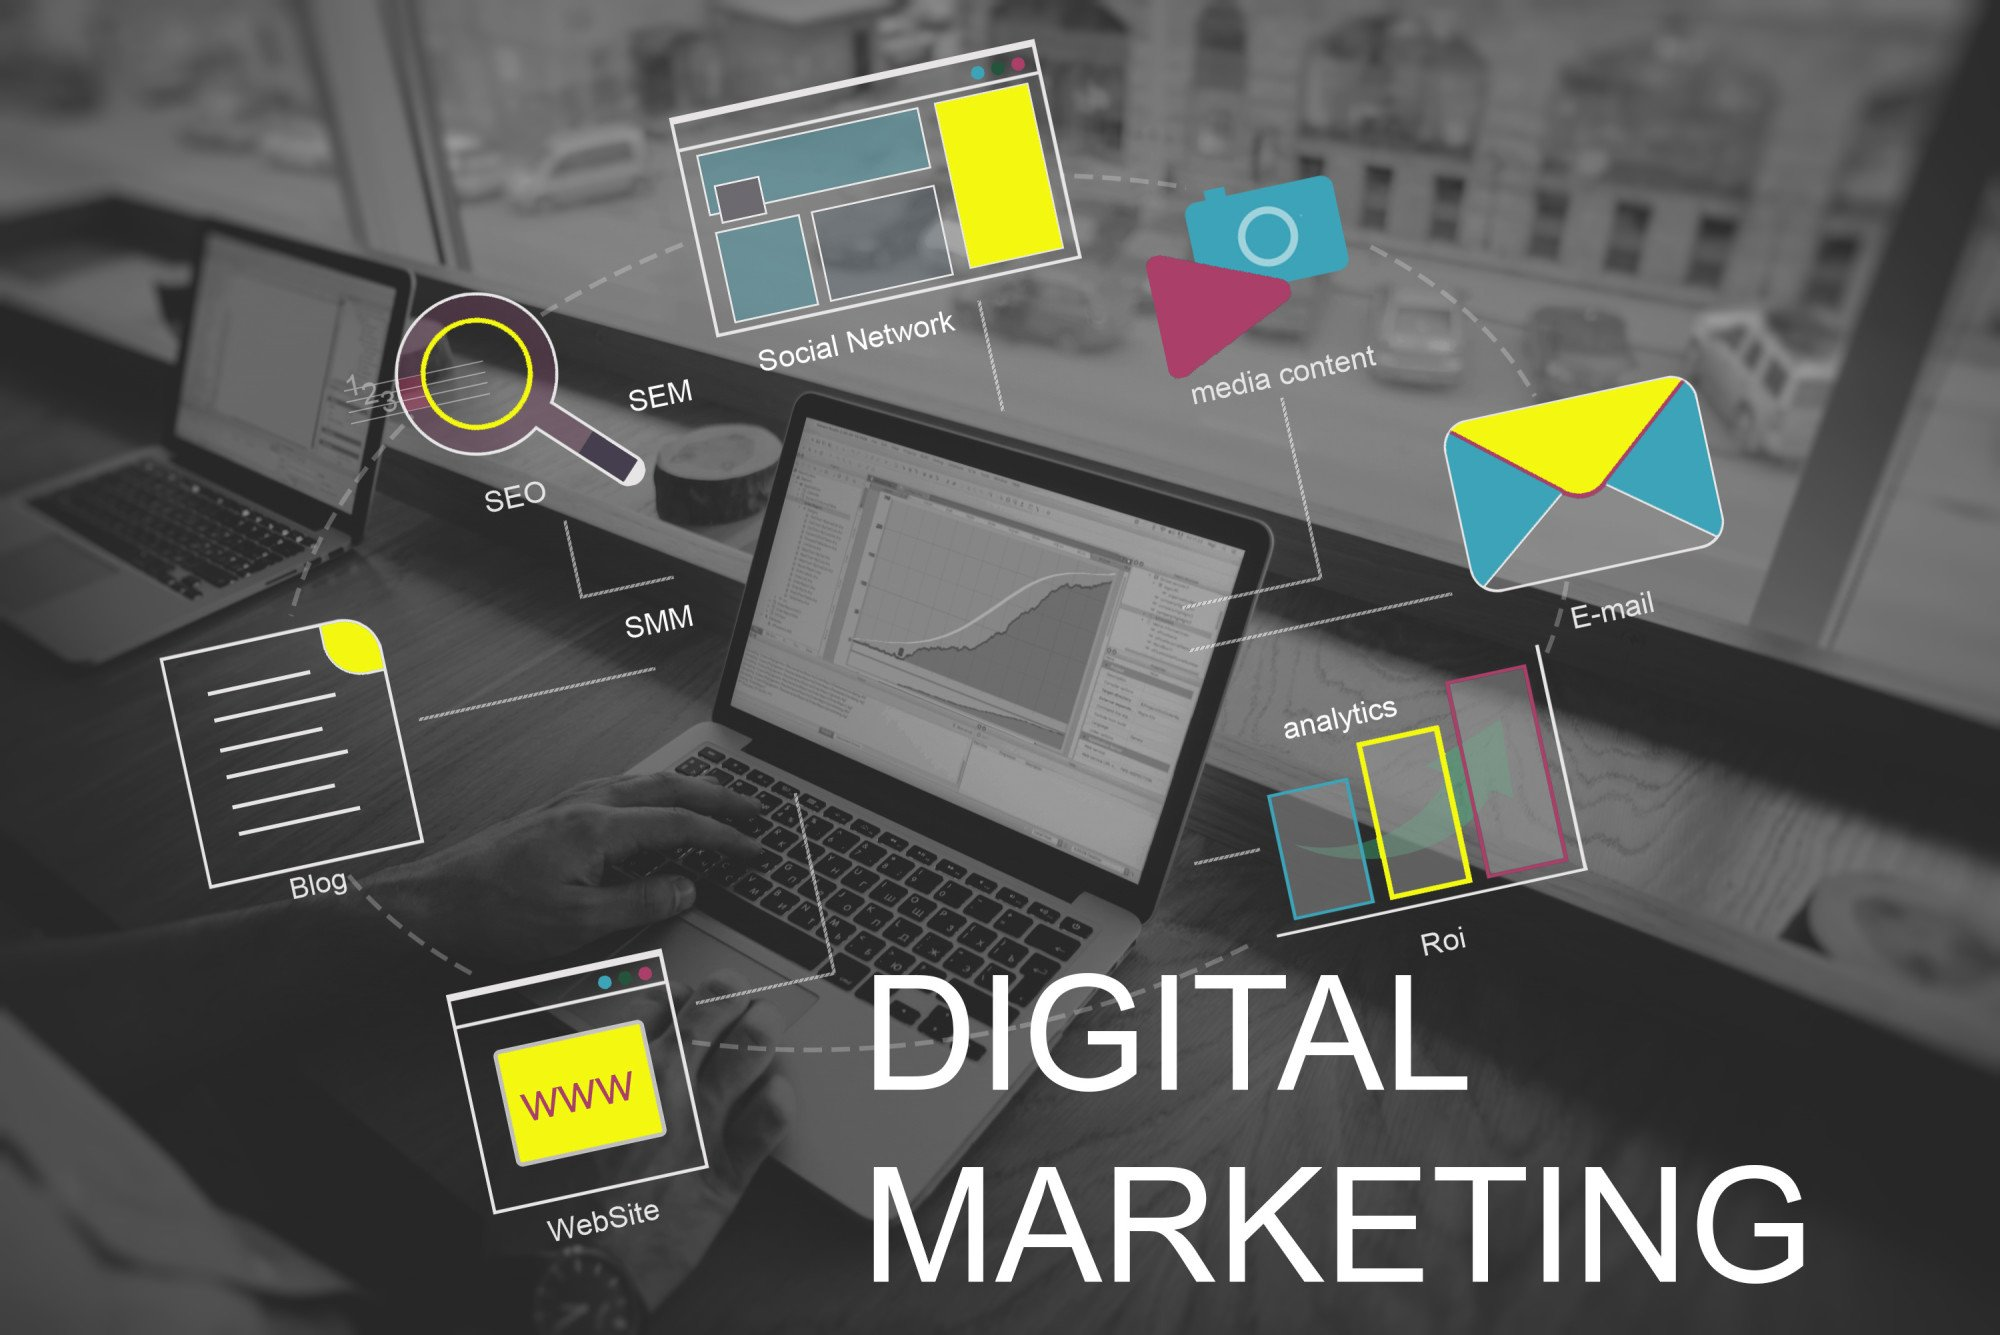 digital marketing graphic displaying marketing aspects